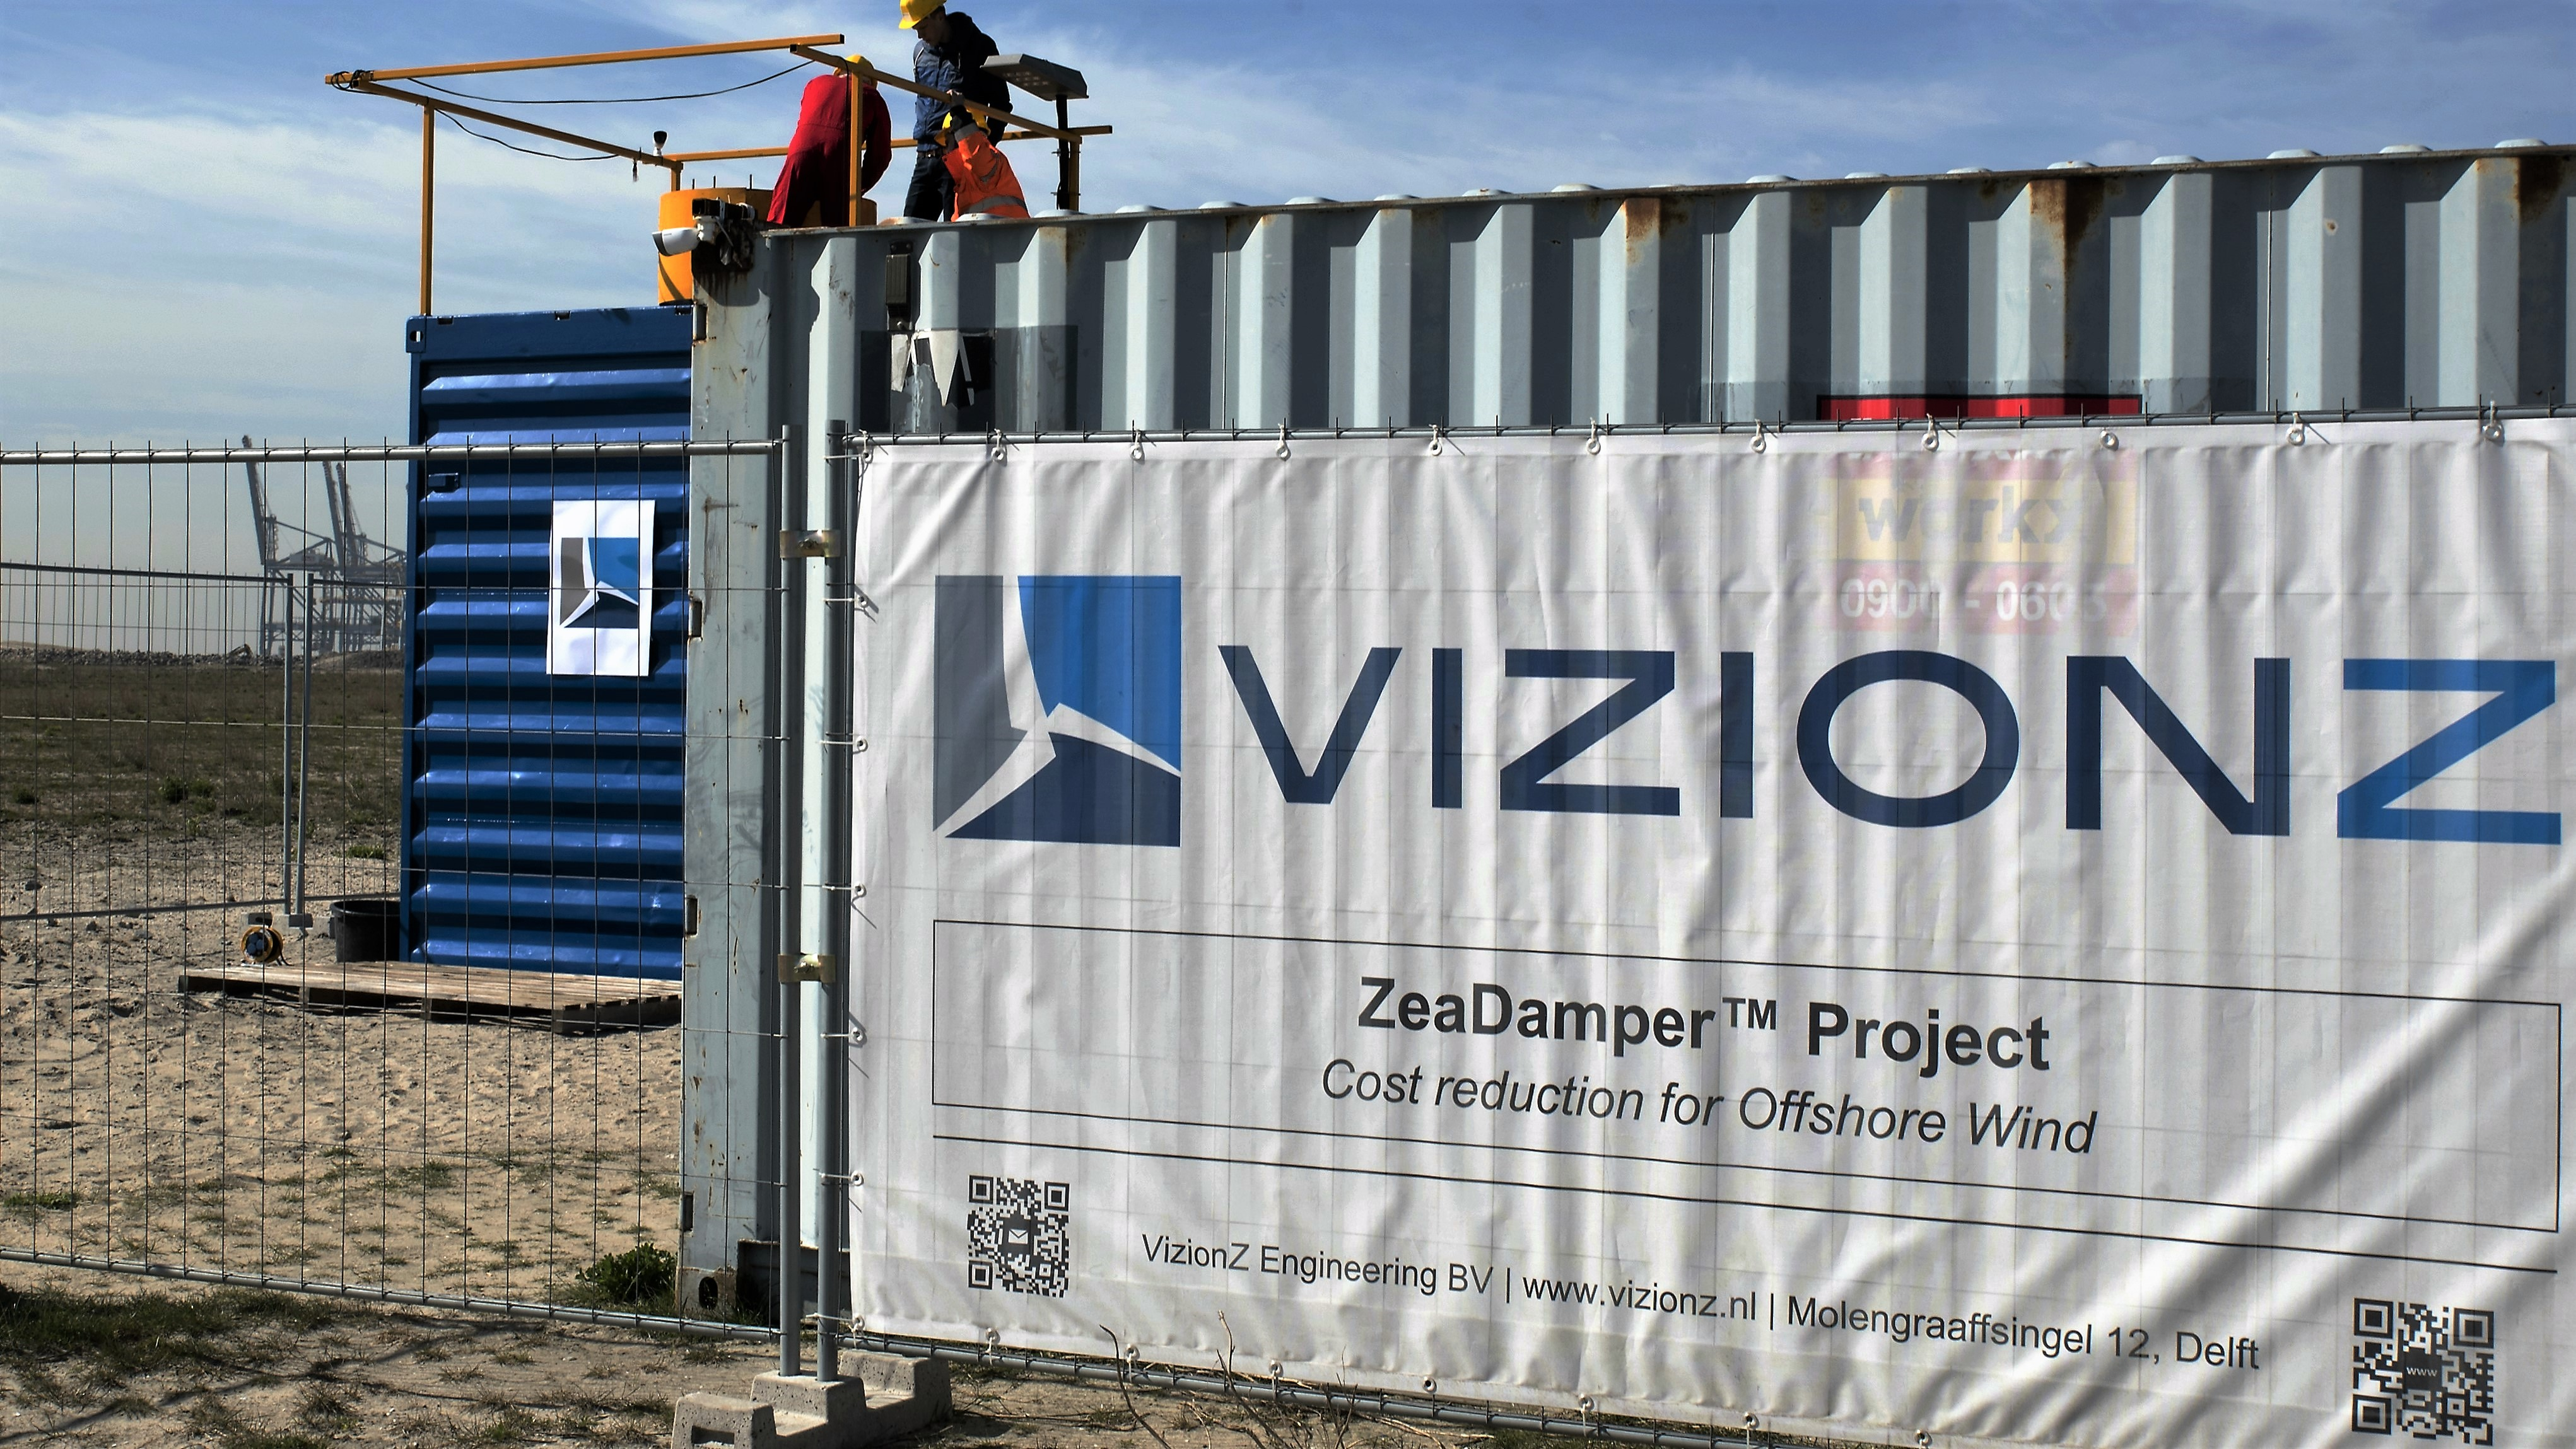 VizionZ Engineering Test and Demonstration Site Port of Rotterdam